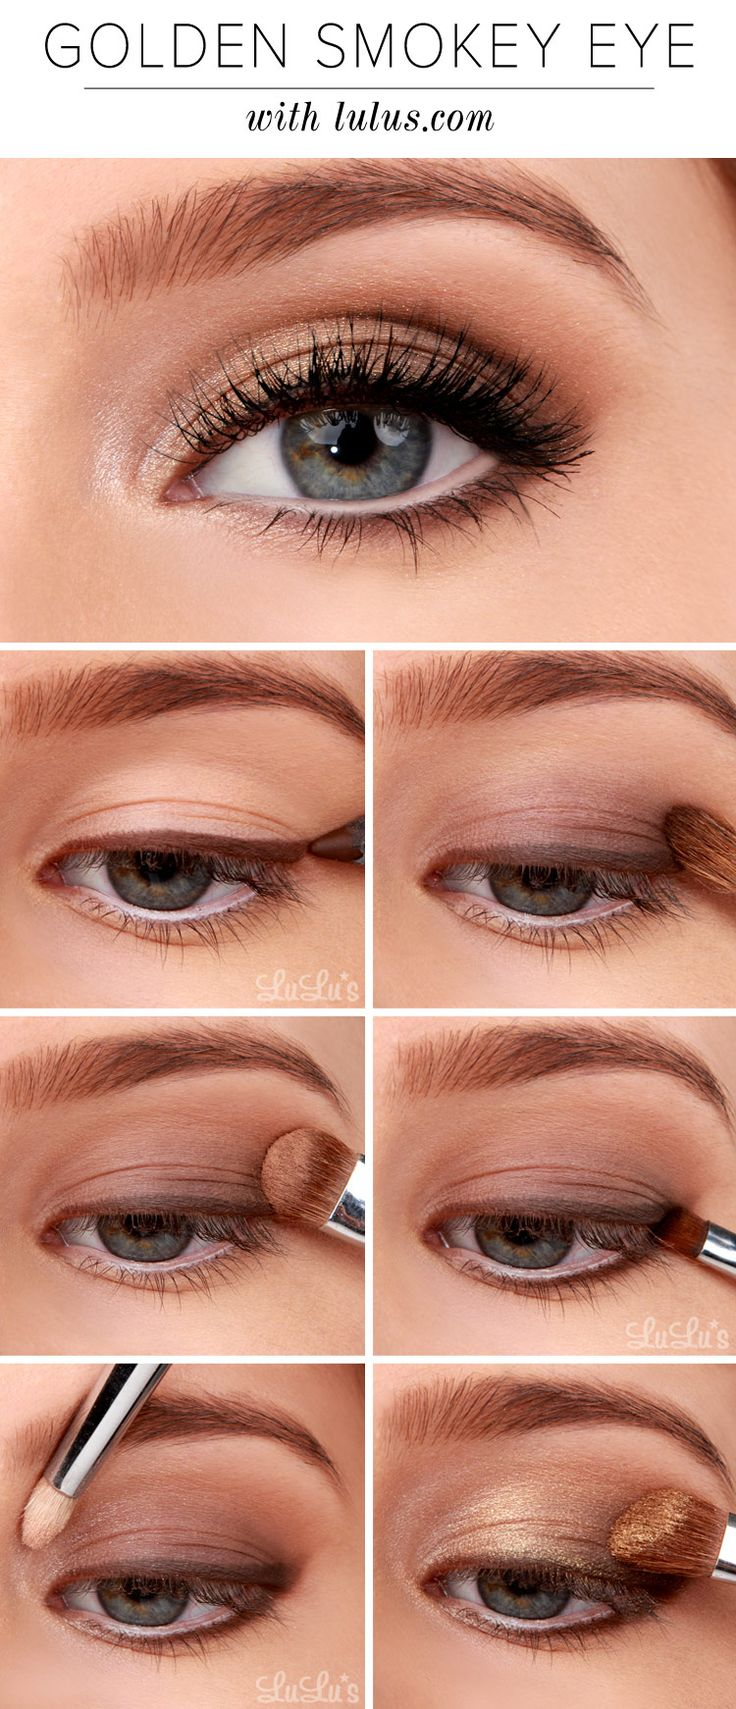 LuLu*s How-To: Golden Smokey Eyeshadow Tutorial - You've seen a smokey eye before, but not quite like this! We chose a neutral brown palette with a touch of gold shimmer for added glam! From the office to a dinner date, we know that as soon as you give our Golden Smokey Eye Tutorial a whirl you'll be rocking this sultry look all season long!